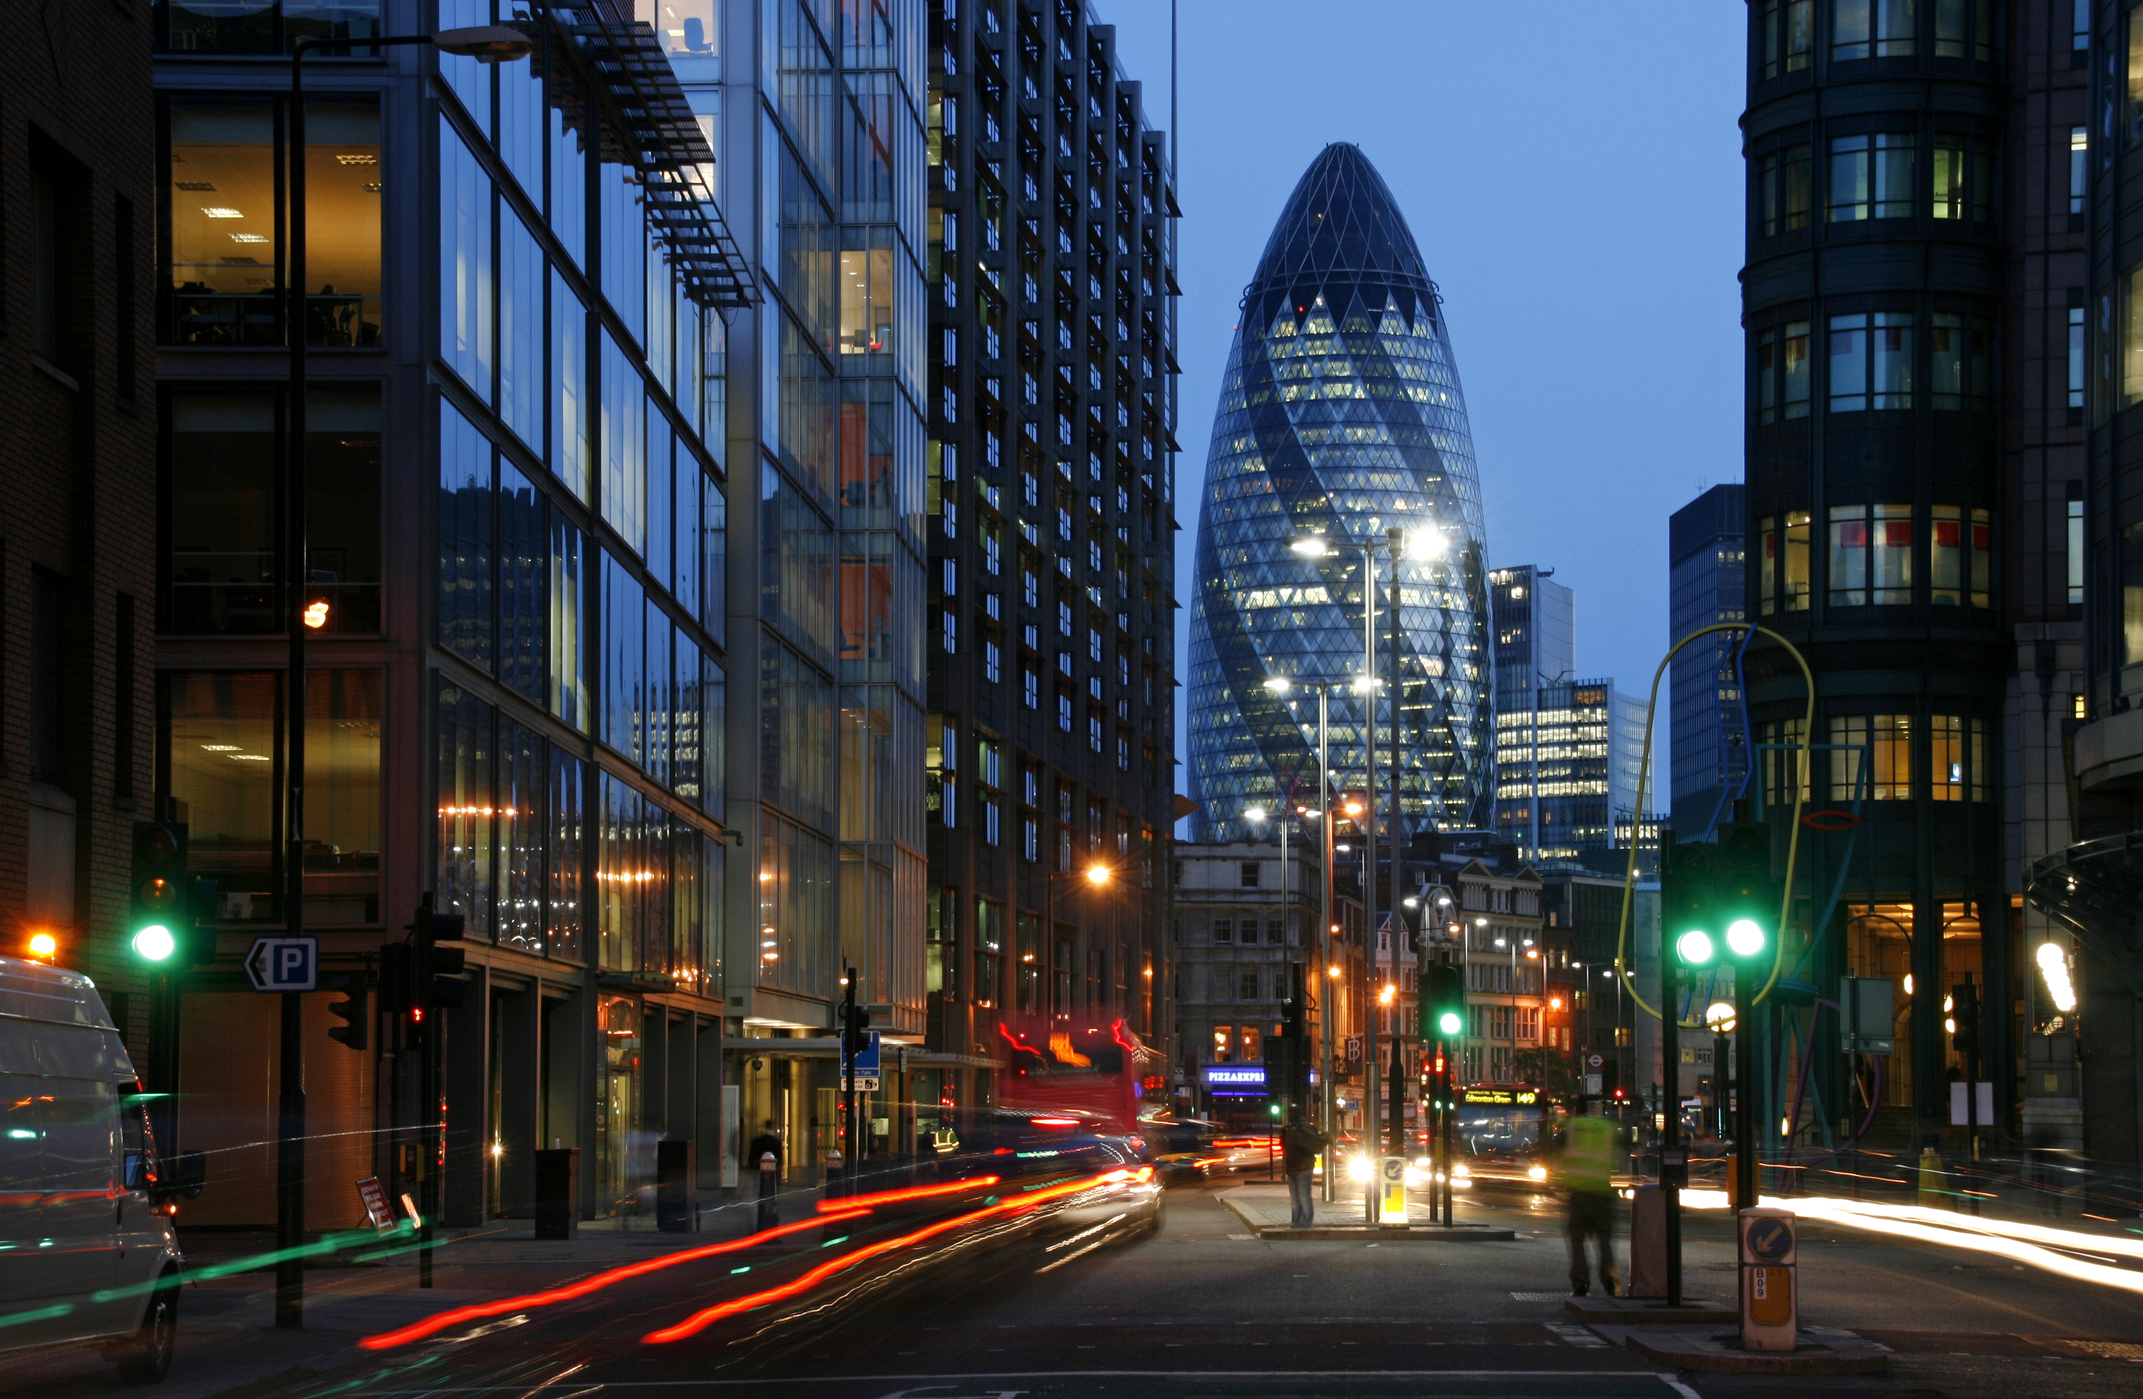 The Swiss Re Tower in the City of London.